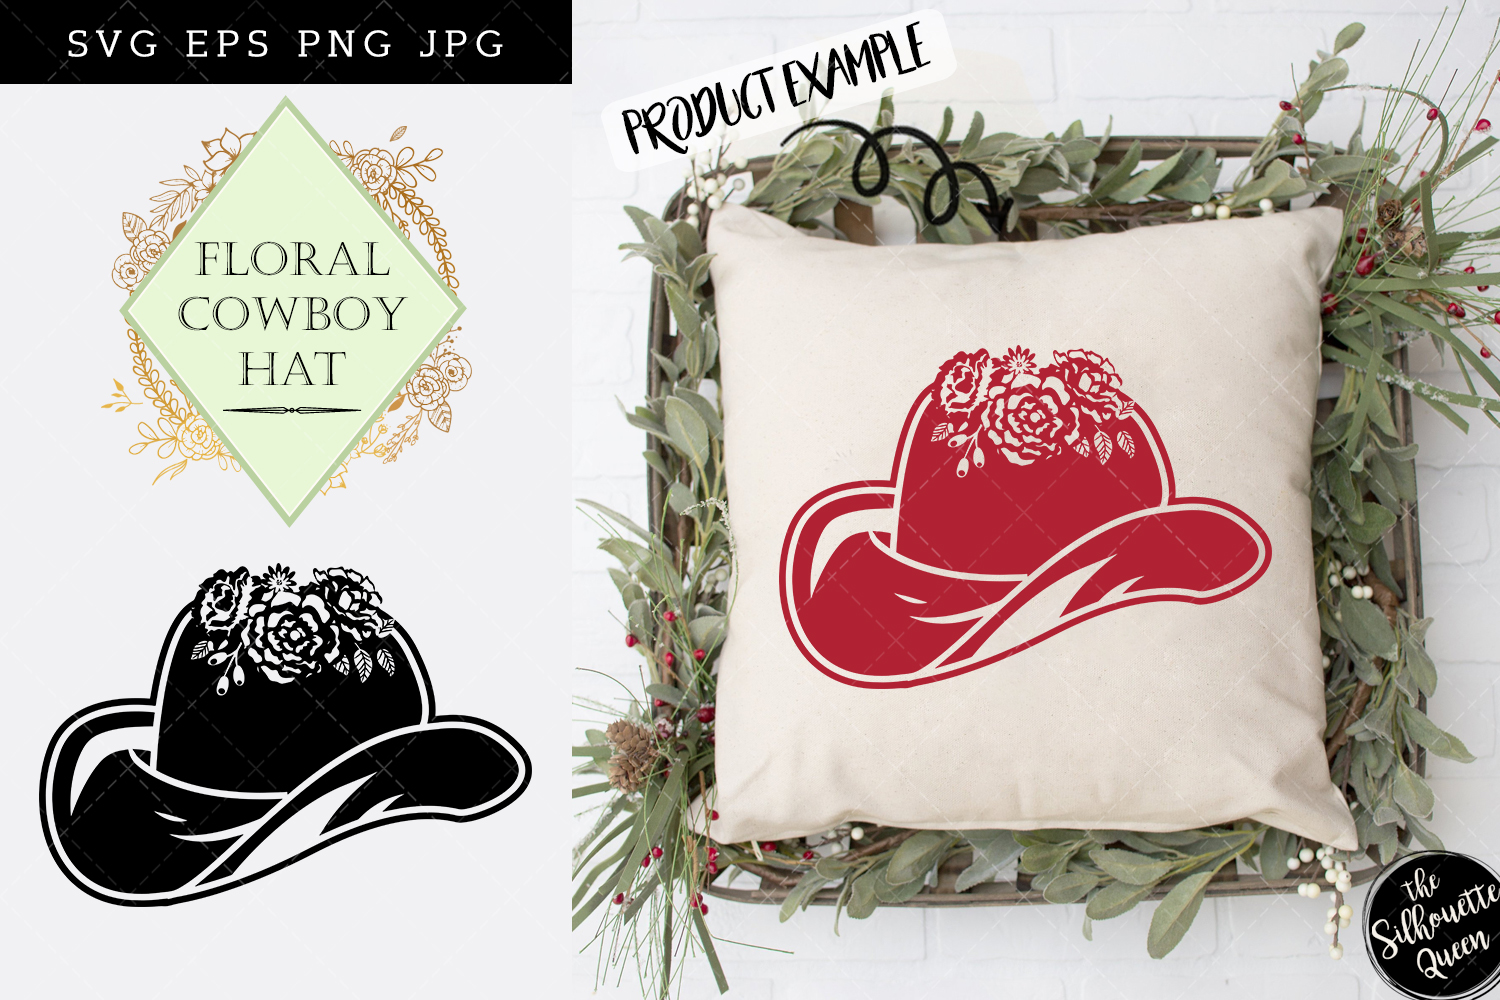 Floral Cowboy Hat Silhouette Vector Graphic By